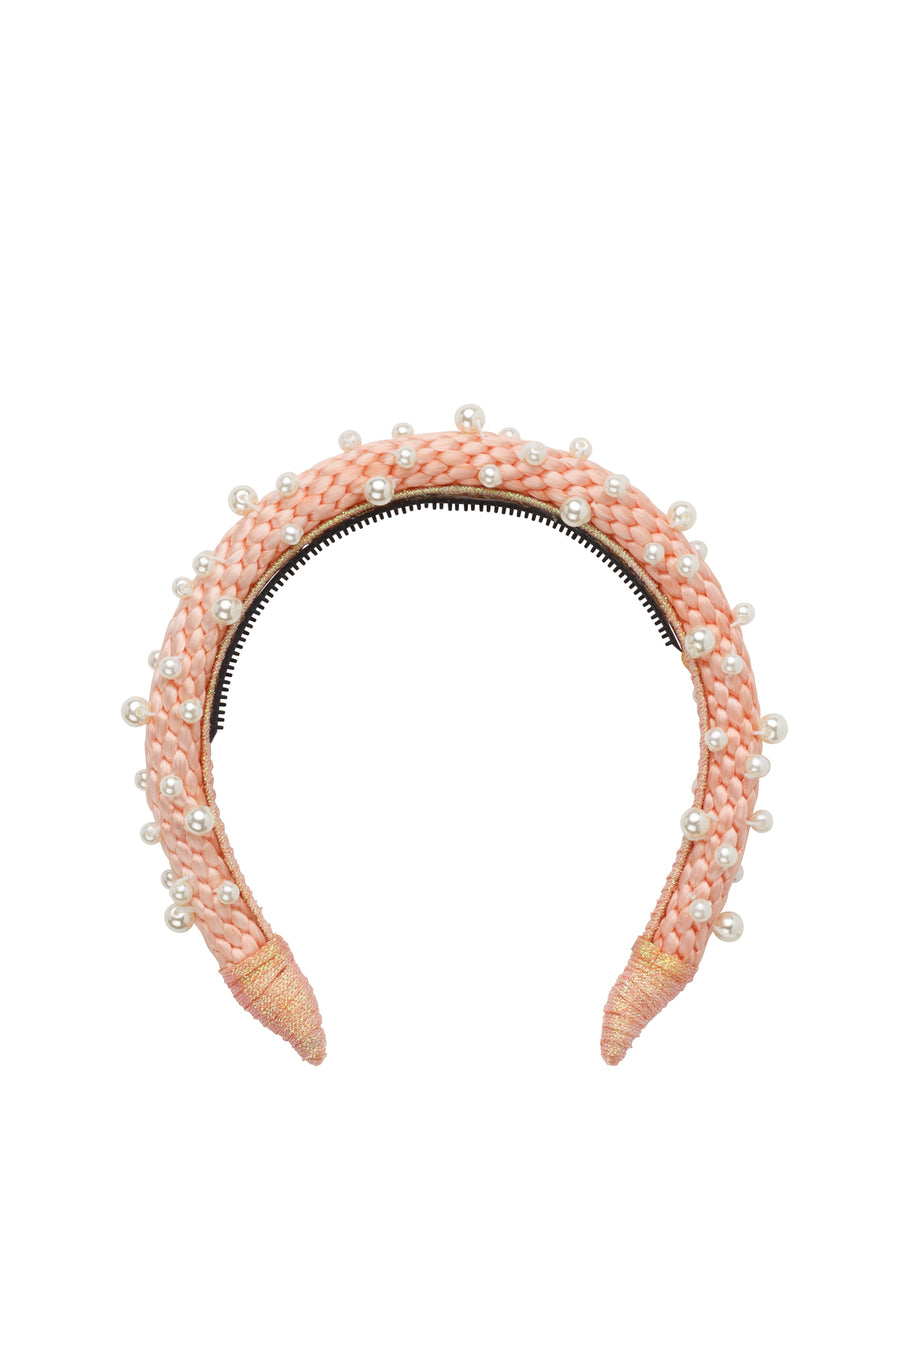 Pearl Queen Women's Headband - Rose - PROJECT 6, modest fashion